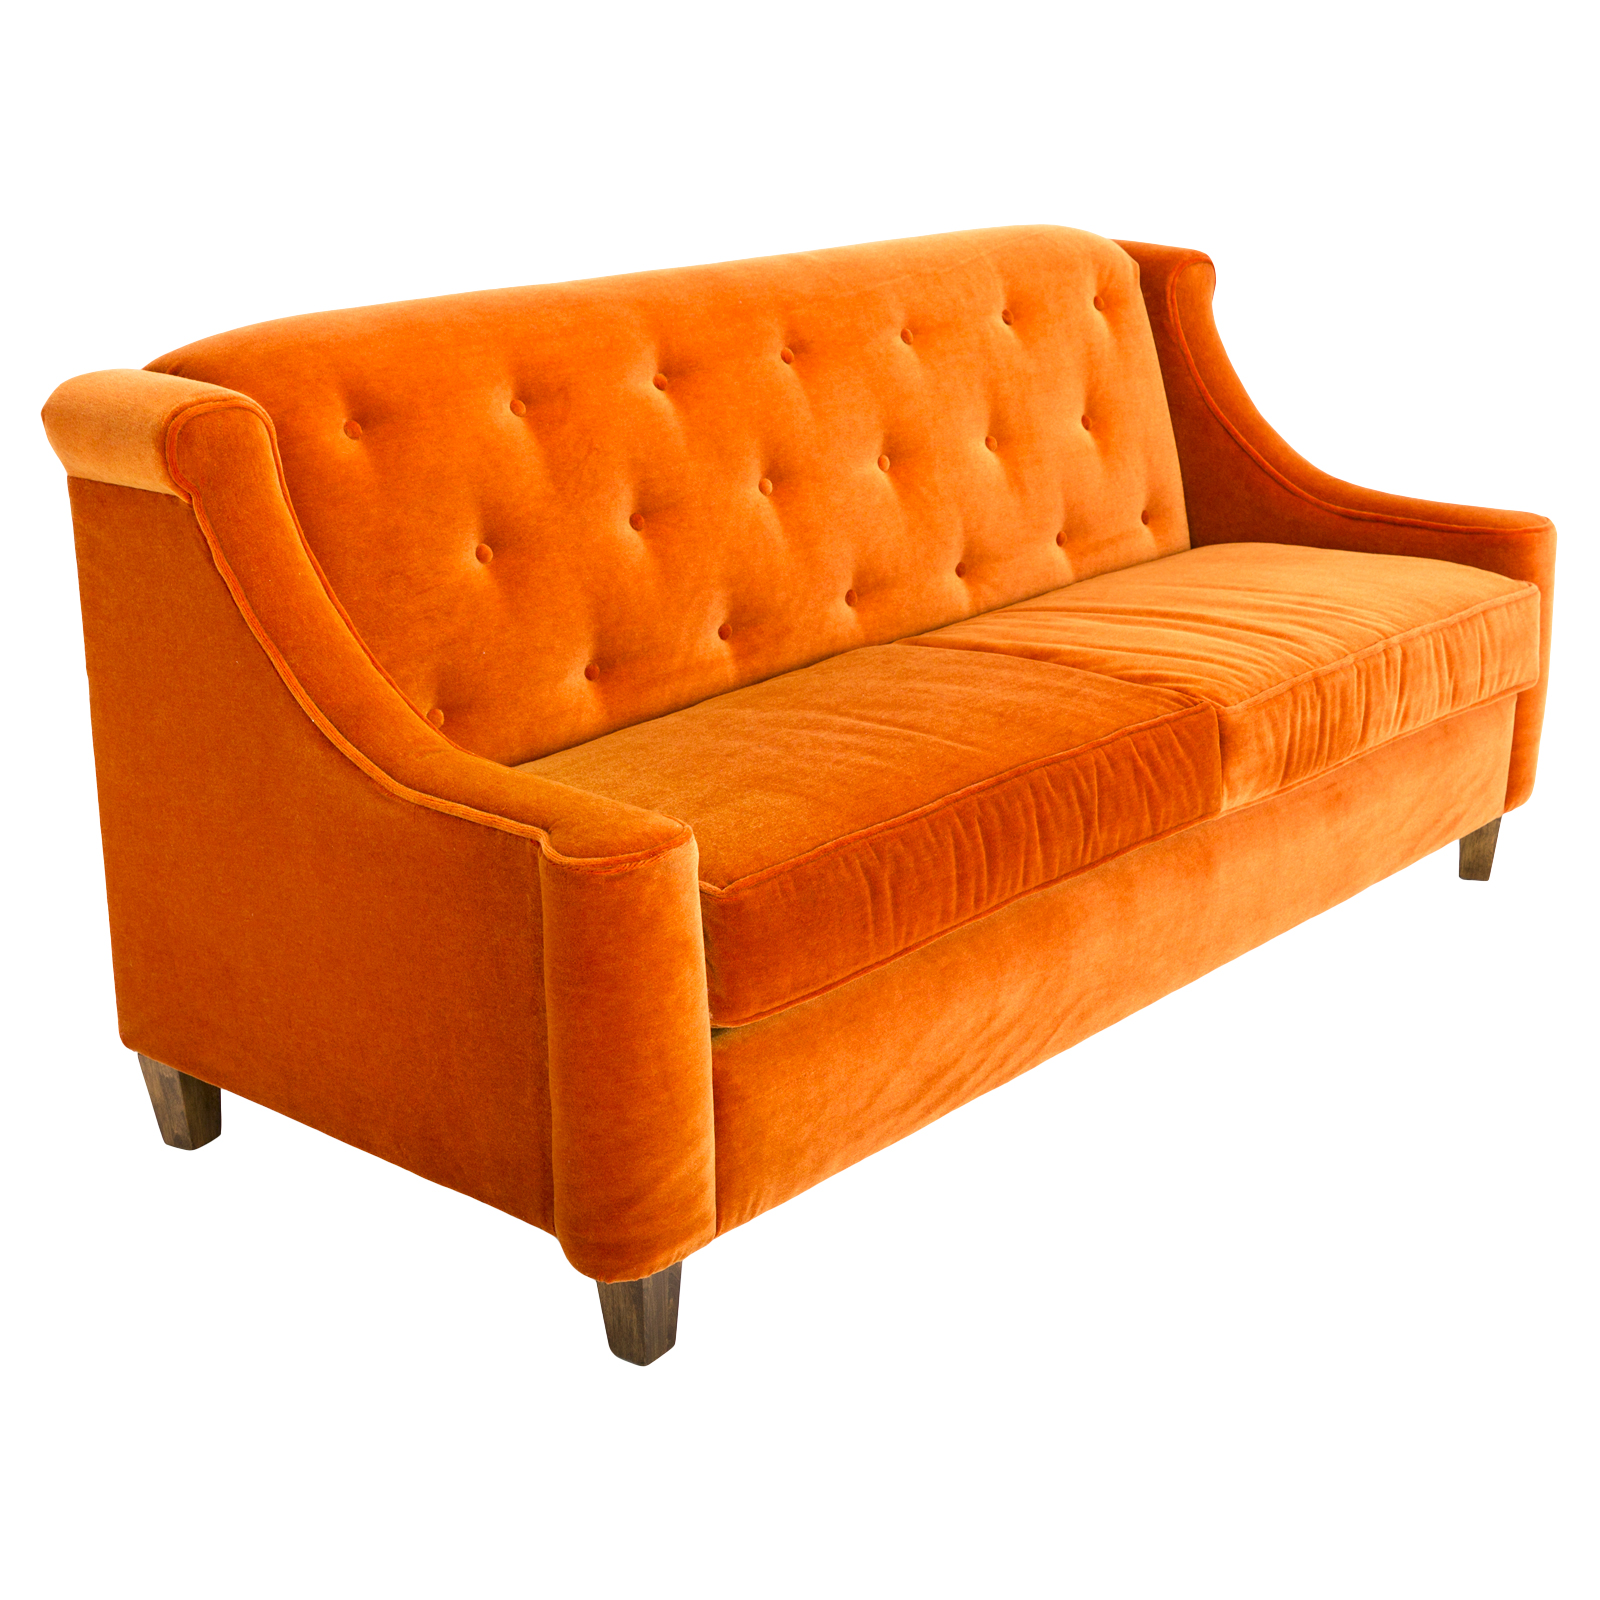 Sofa Orange Orange Sofa Rentals Event Furniture Rental Formdecor